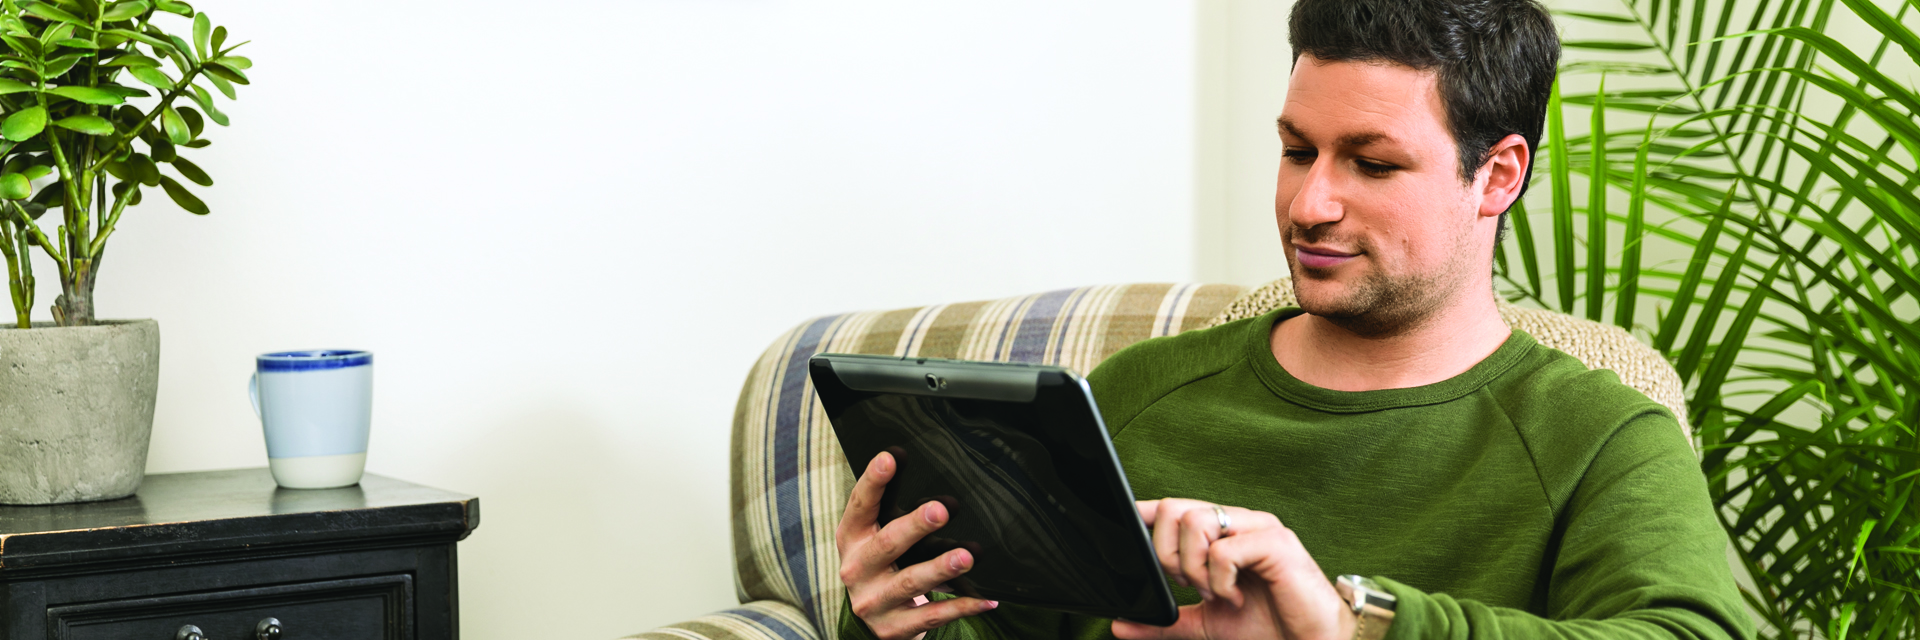 Man on tablet